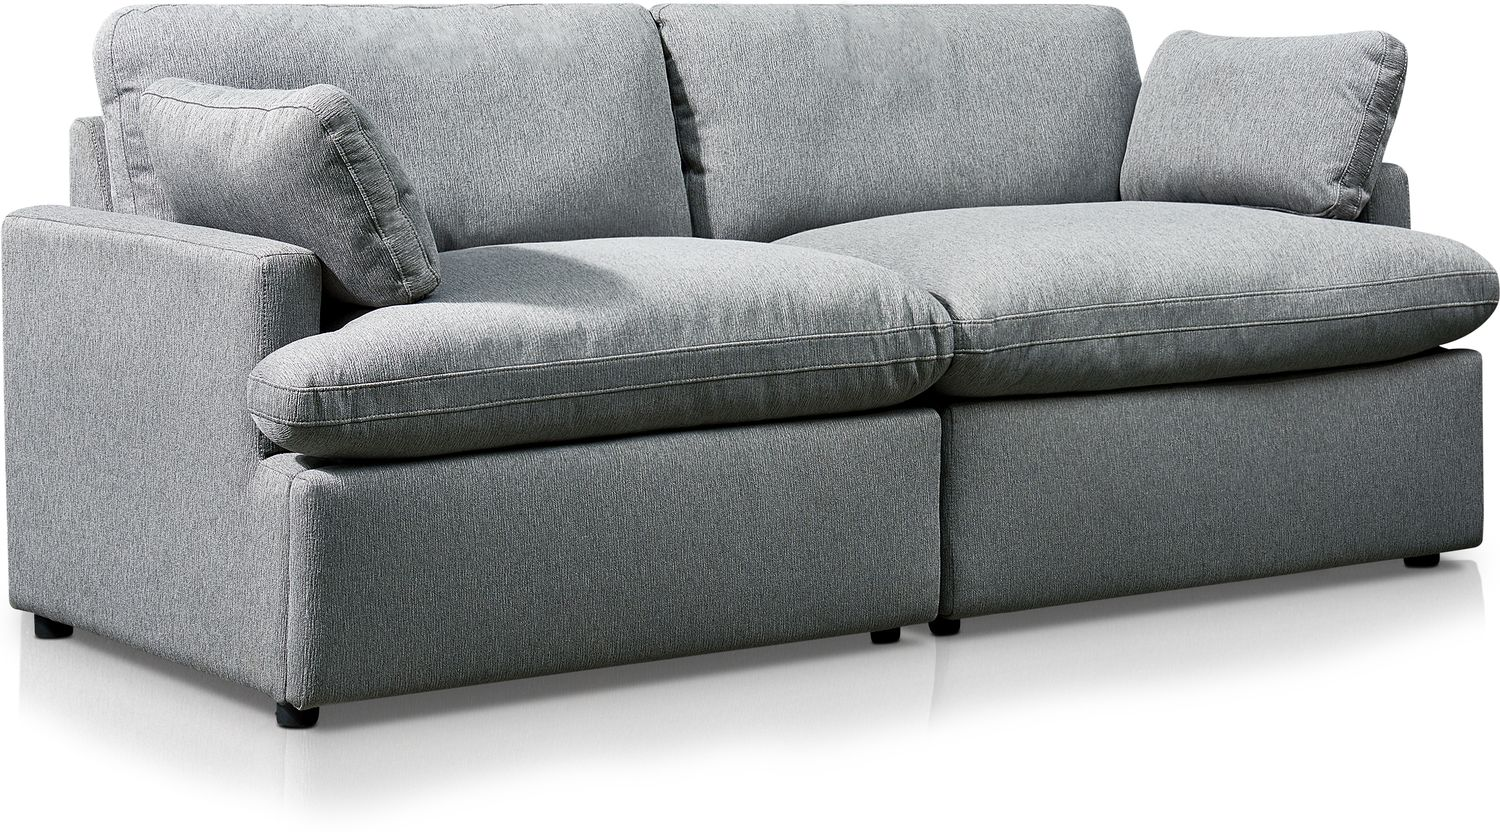 Living Room Furniture - Cozy 2-Piece Power Reclining Sofa